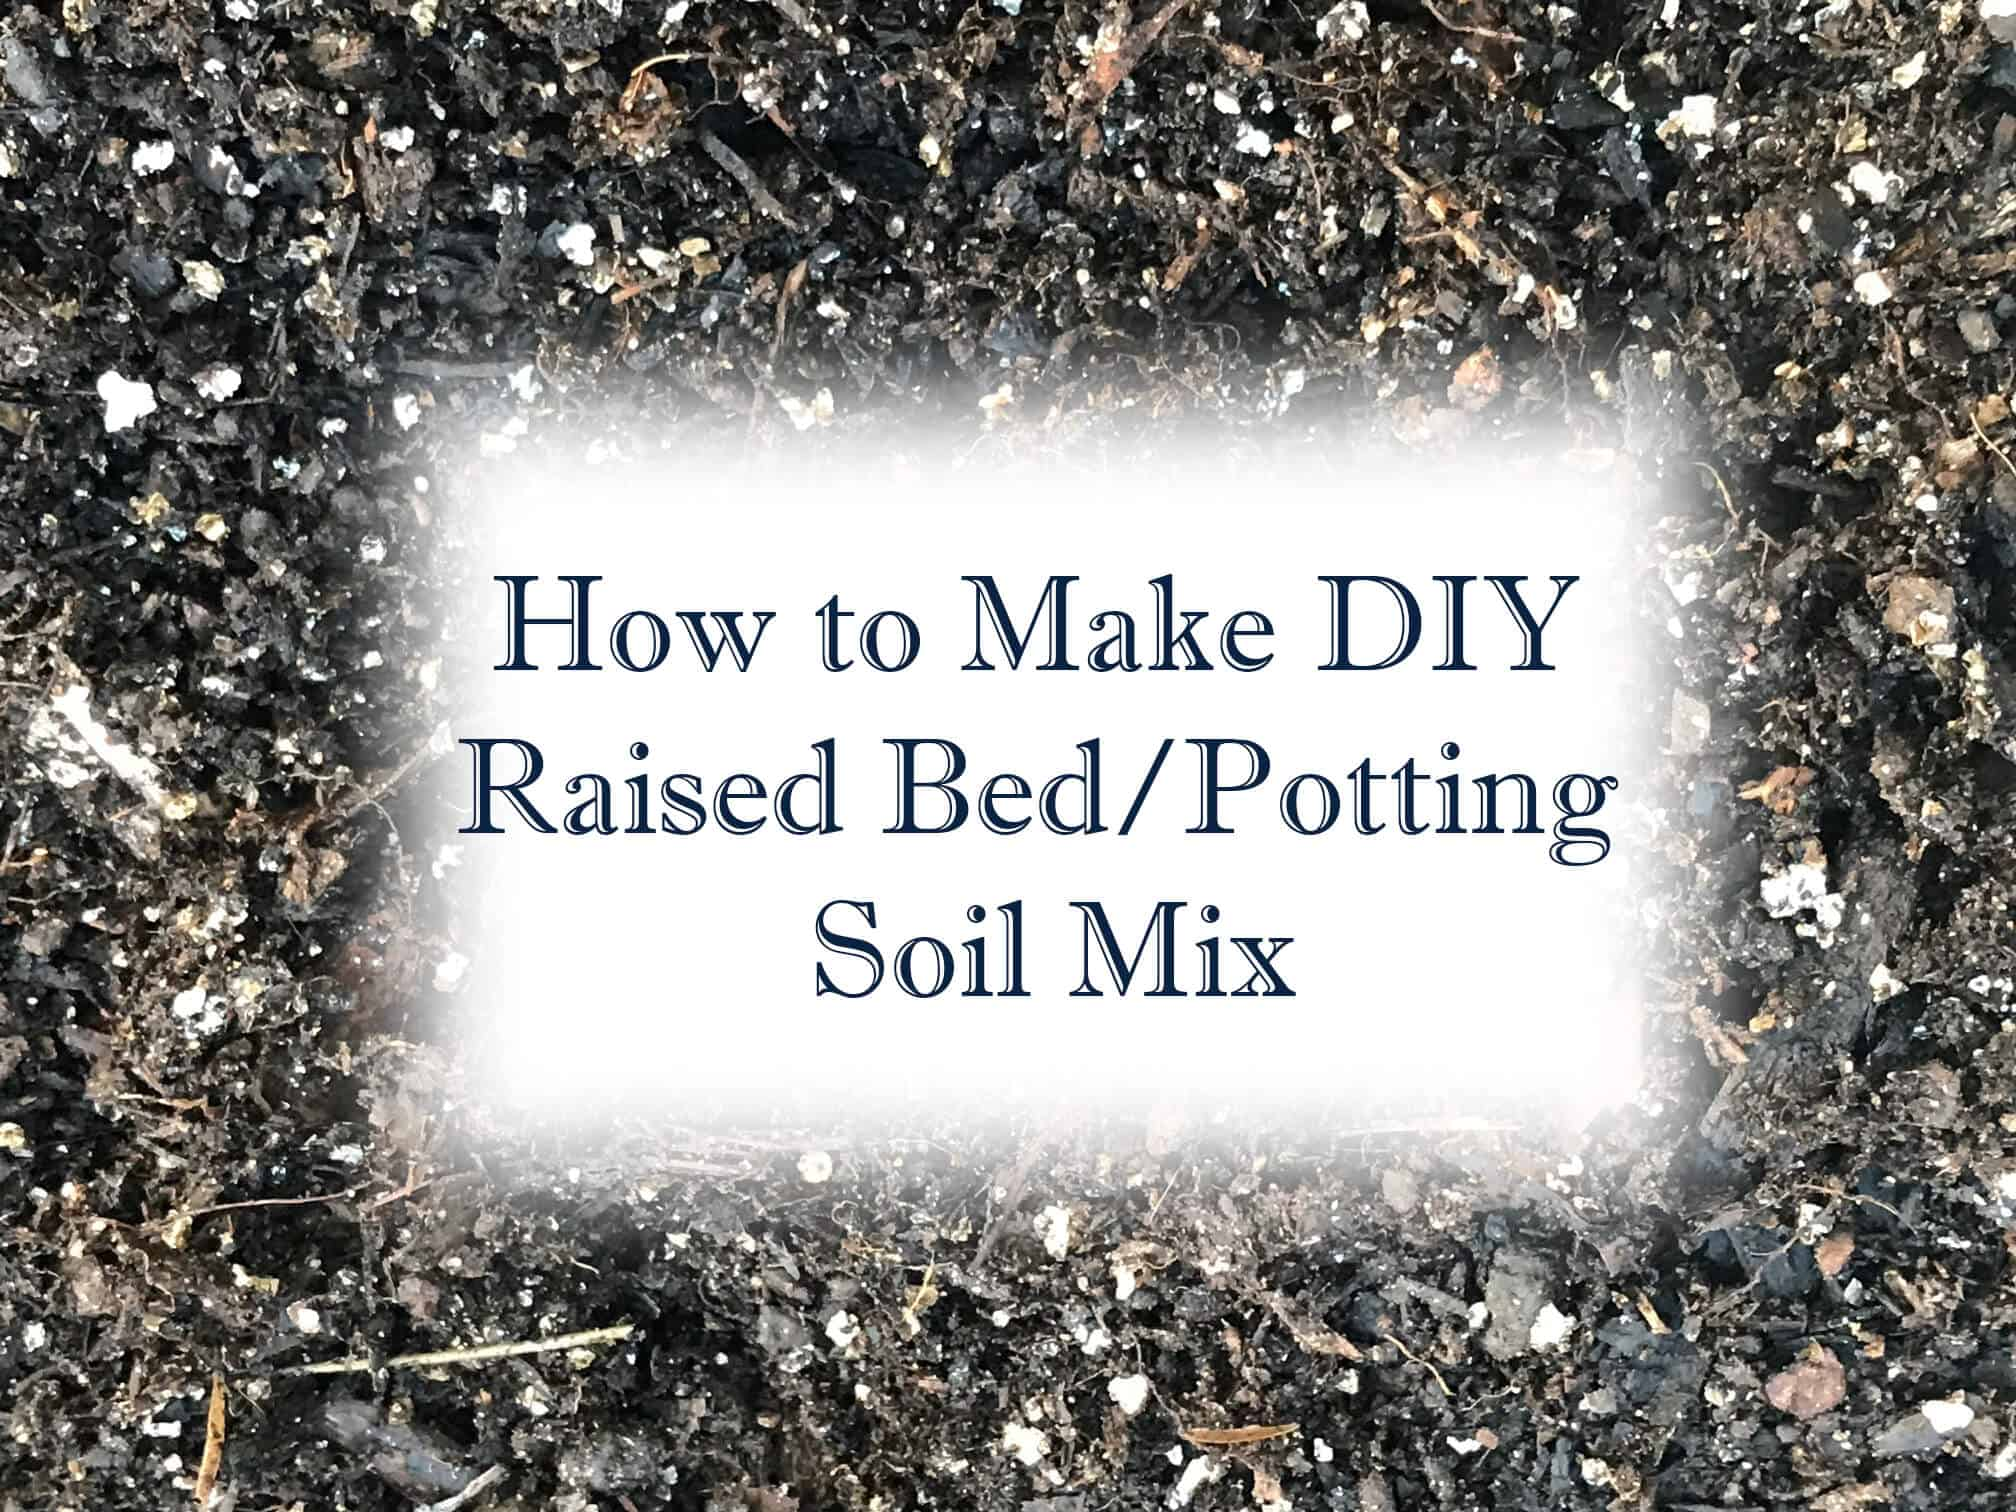 Save By Making Your Own Raised Bed Potting Soil Mix From Seed To Spoon